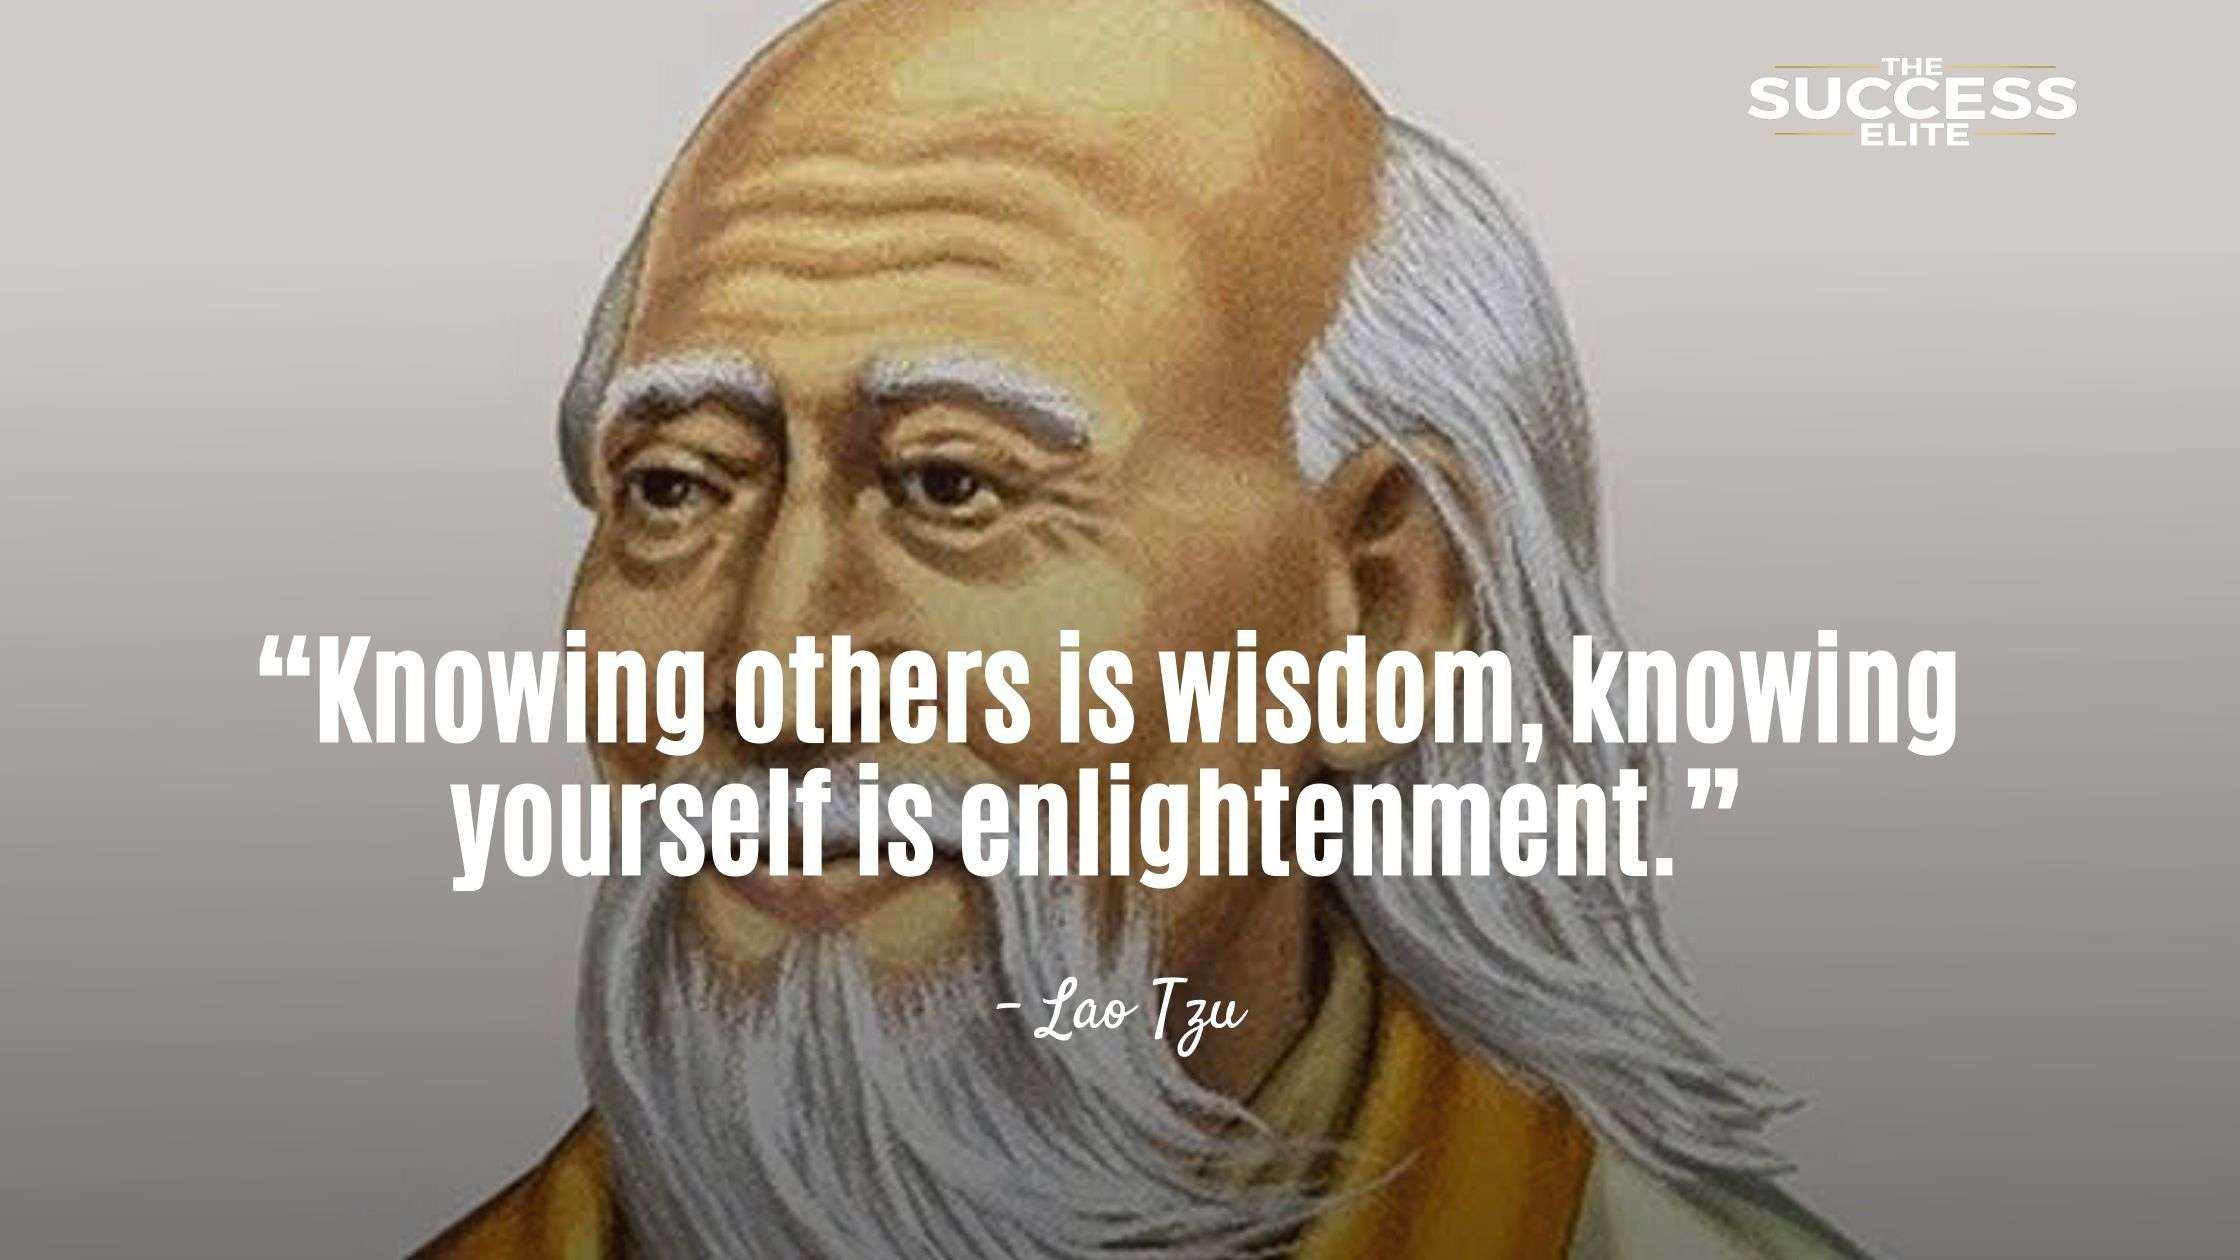 Top 35 Inspiring Lao Tzu Quotes To Be The Best You